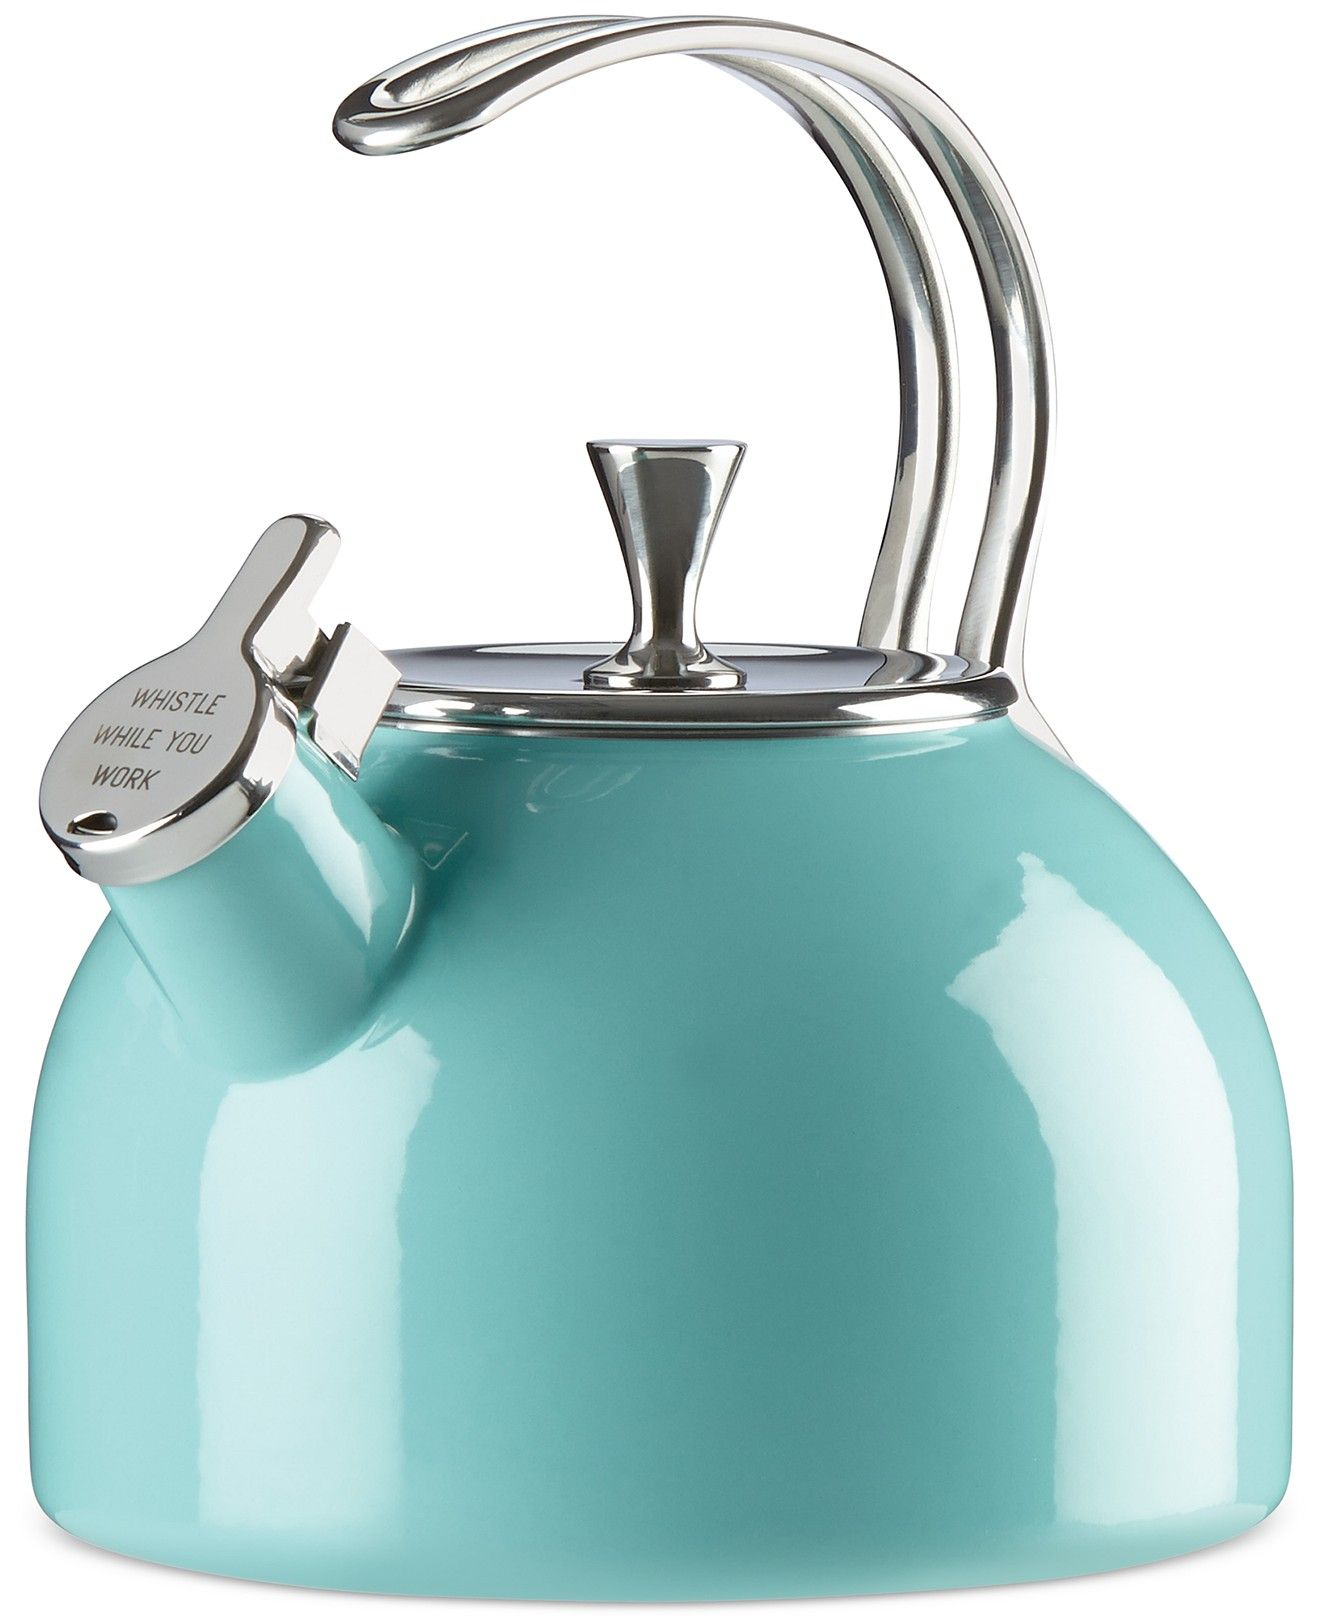 kate spade new york all in good taste qt tea kettle  kettle  - kate spade new york all in good taste qt tea kettle only